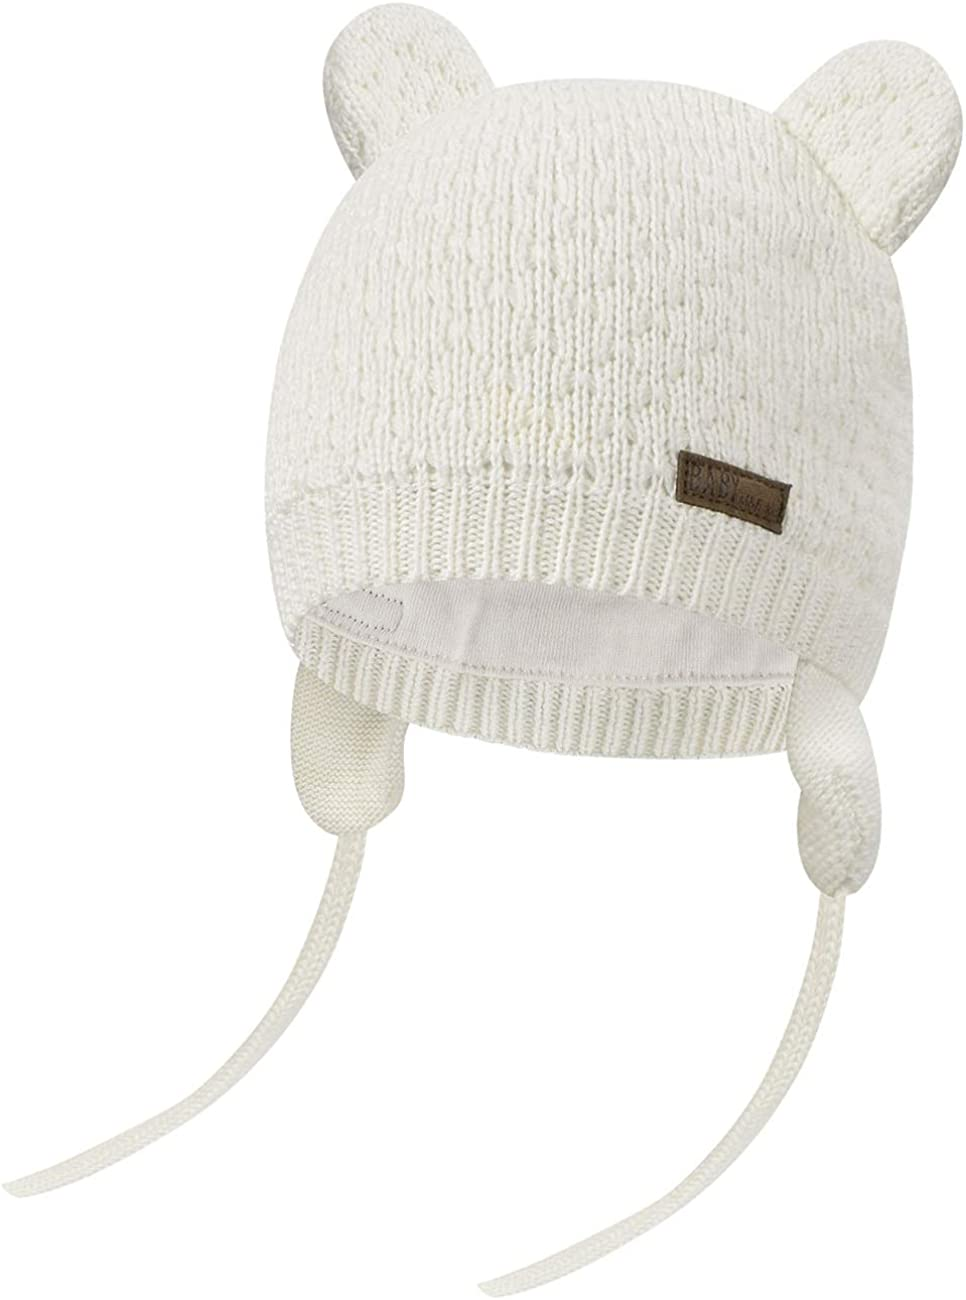 Heekpek Baby Winter Hat Warm Knitted Earflap Cap Beanie Cute Bear Caps s for 0-3 Year Old Month Toddler Boys Girls